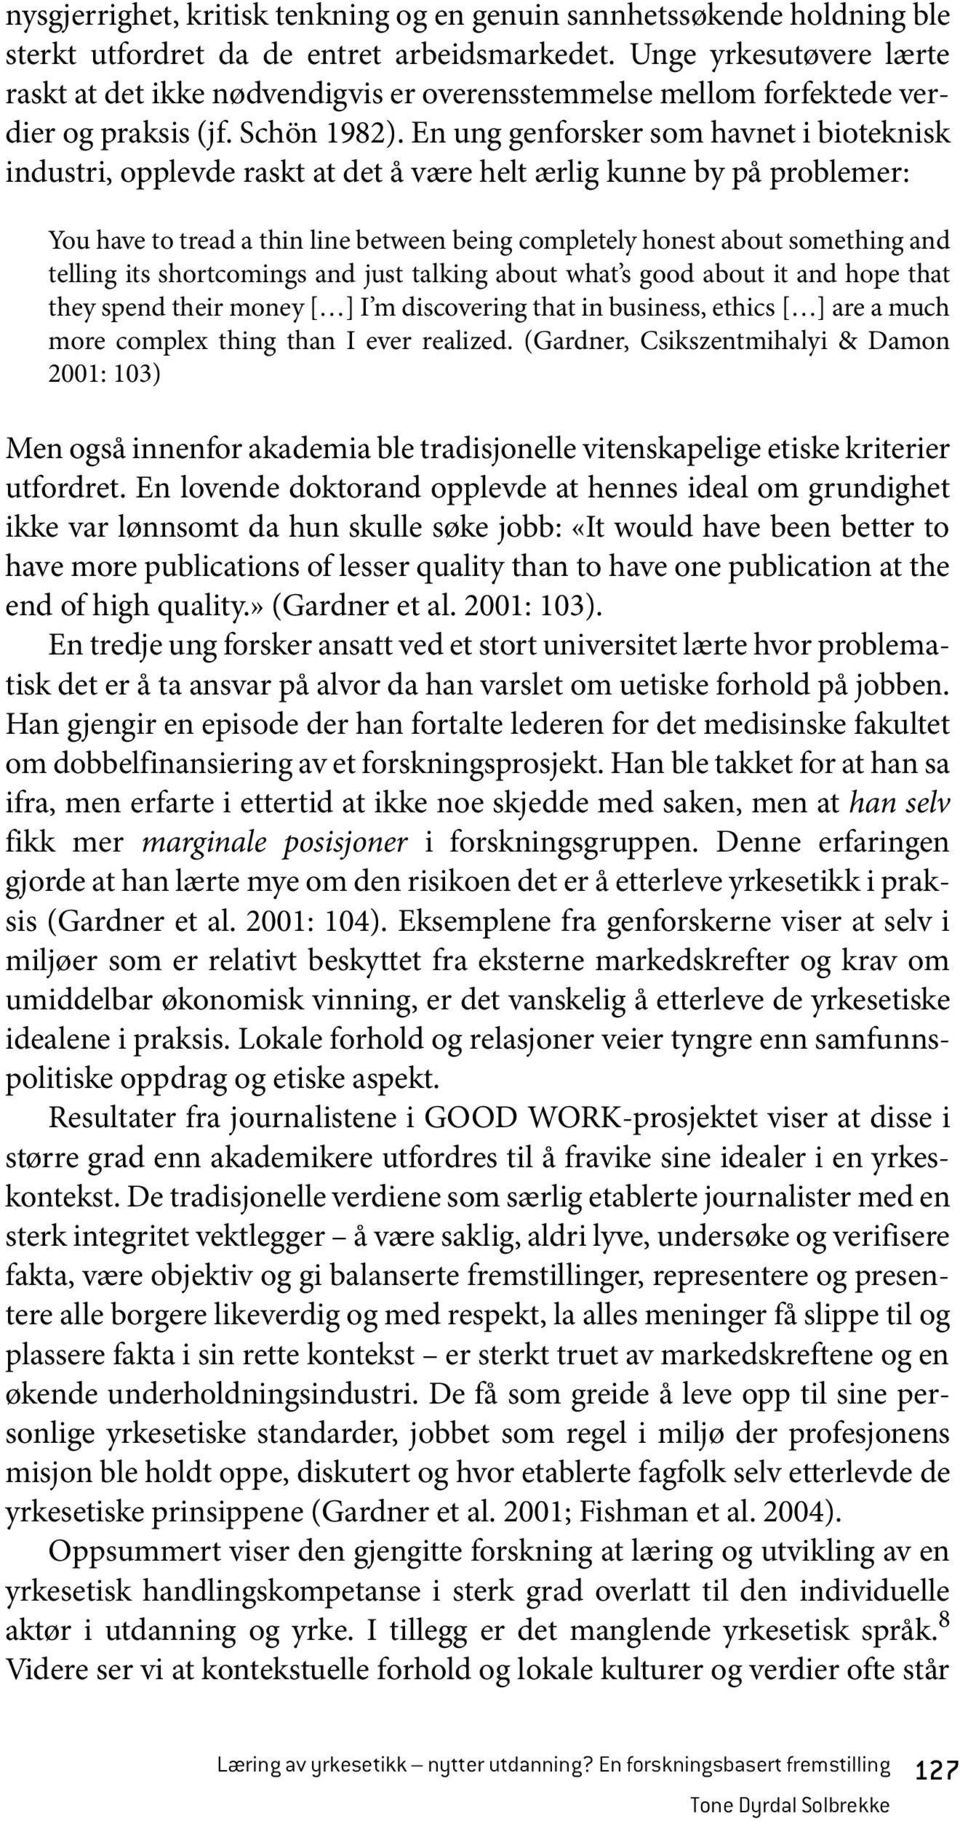 En ung genforsker som havnet i bioteknisk industri, opplevde raskt at det å være helt ærlig kunne by på problemer: You have to tread a thin line between being completely honest about something and